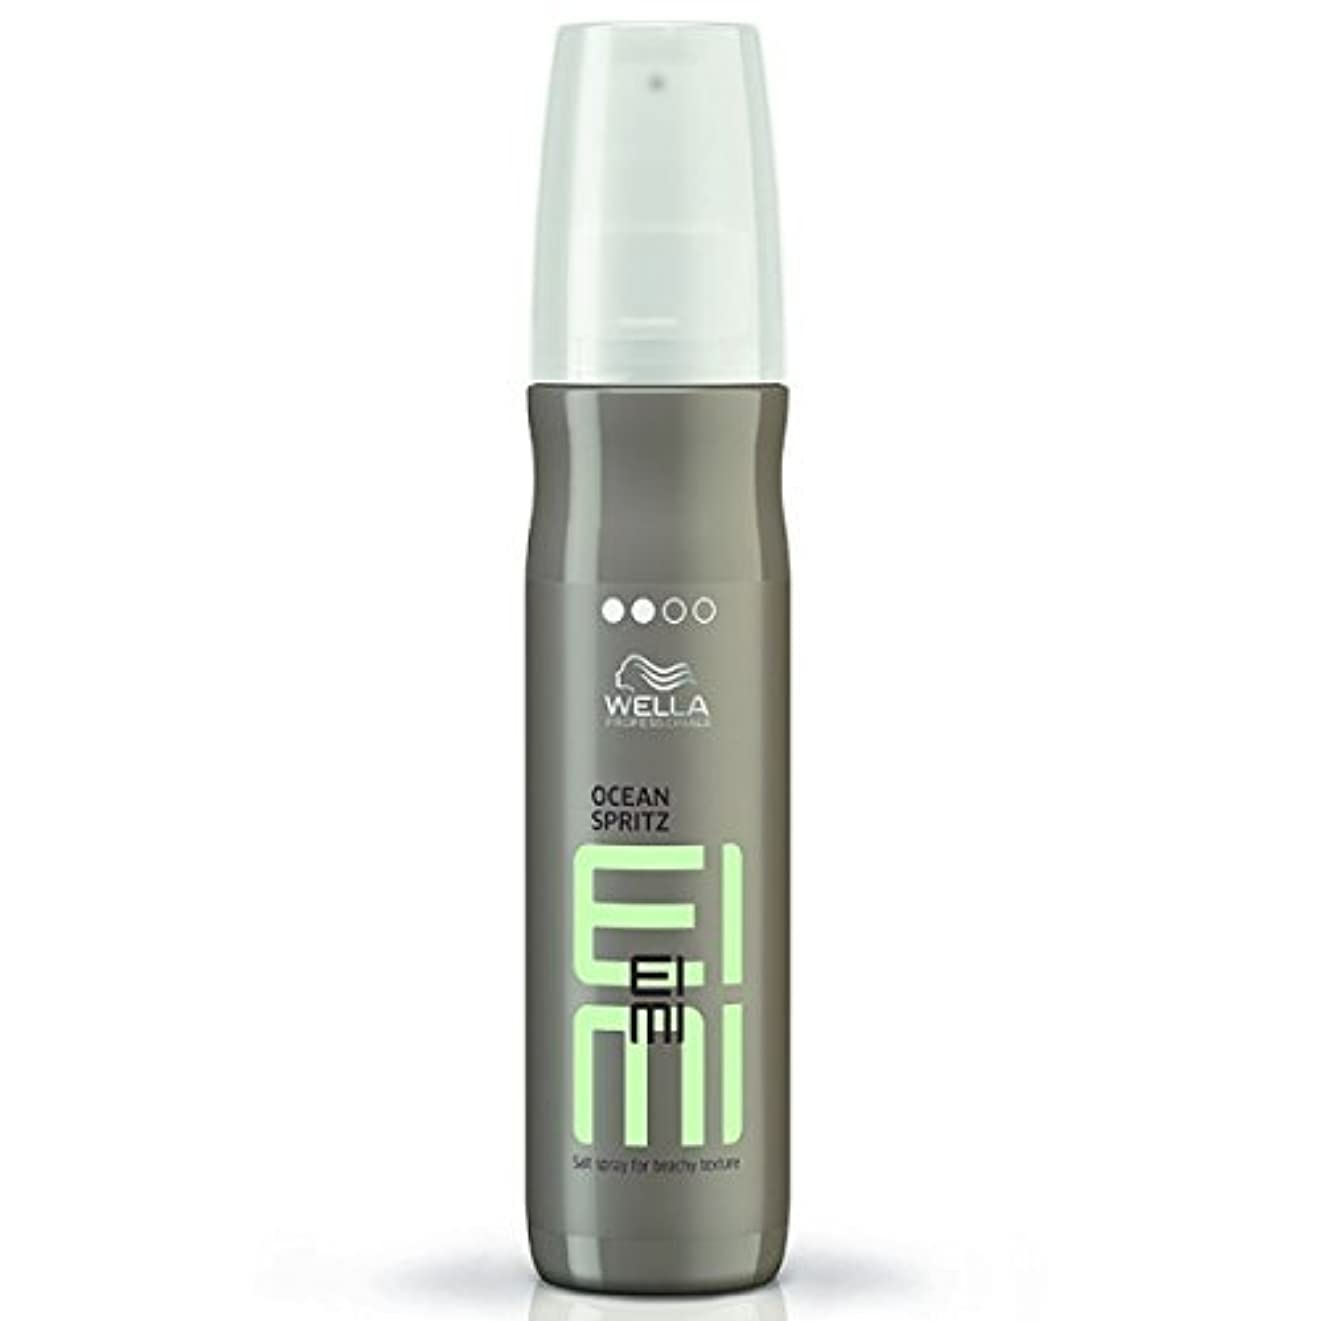 悪いディプロマ懇願するWella EIMI Ocean Spritz - Salt Spray For Beachy Hair Texture 150 ml [並行輸入品]